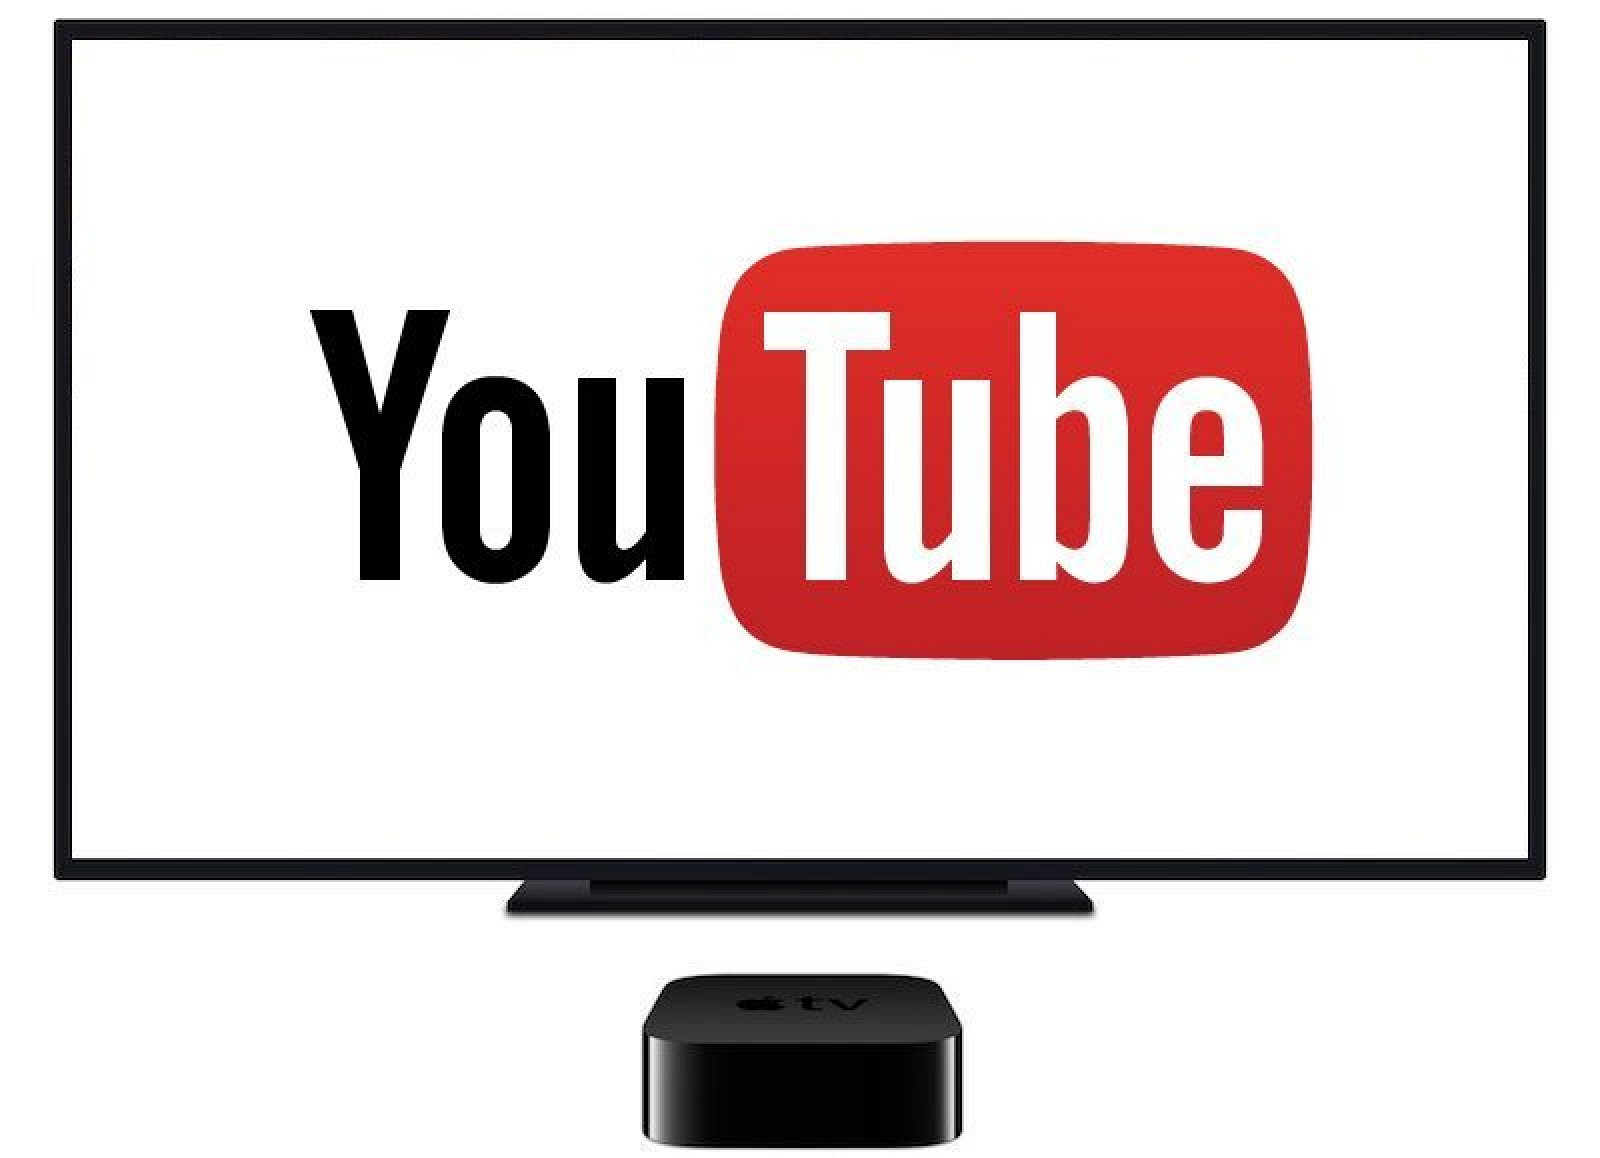 YouTube Users Watch More Than - Youtube Clipart